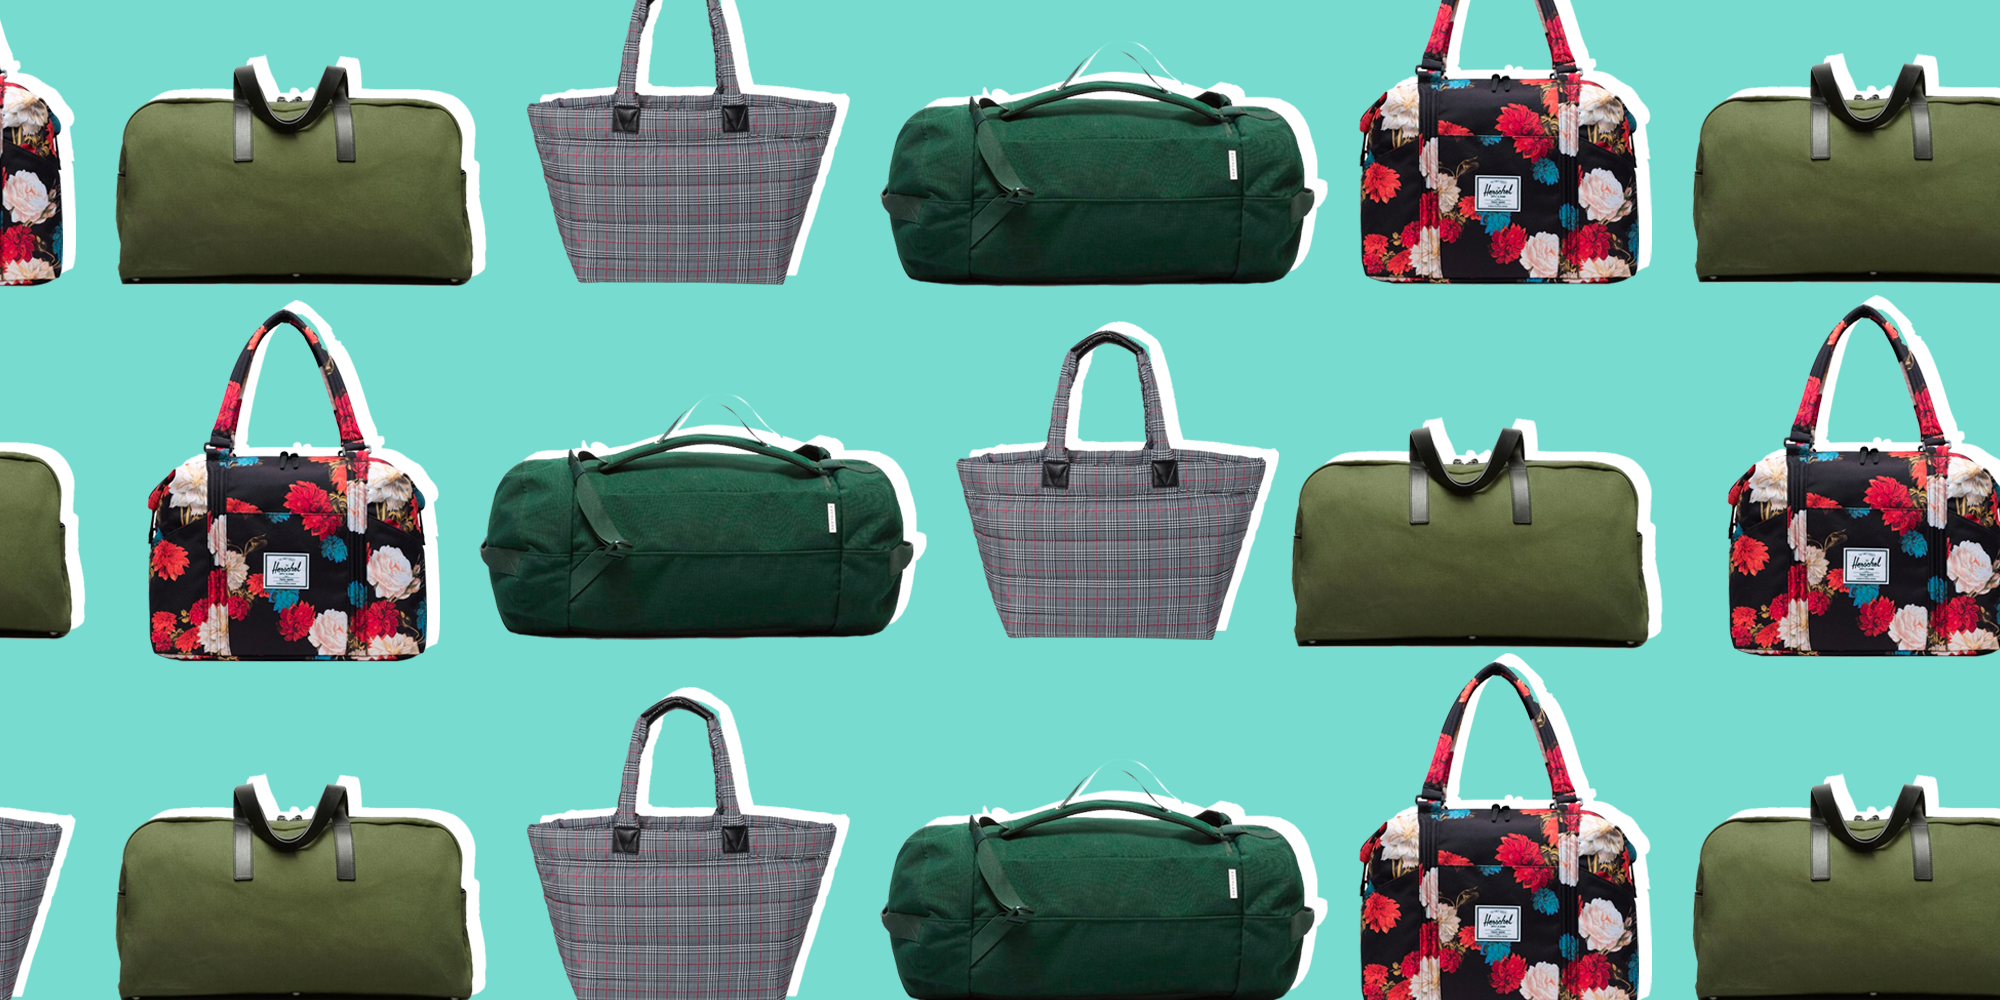 25 Stylish Weekender Bags That'll Inspire You to Plan a Quick Getaway